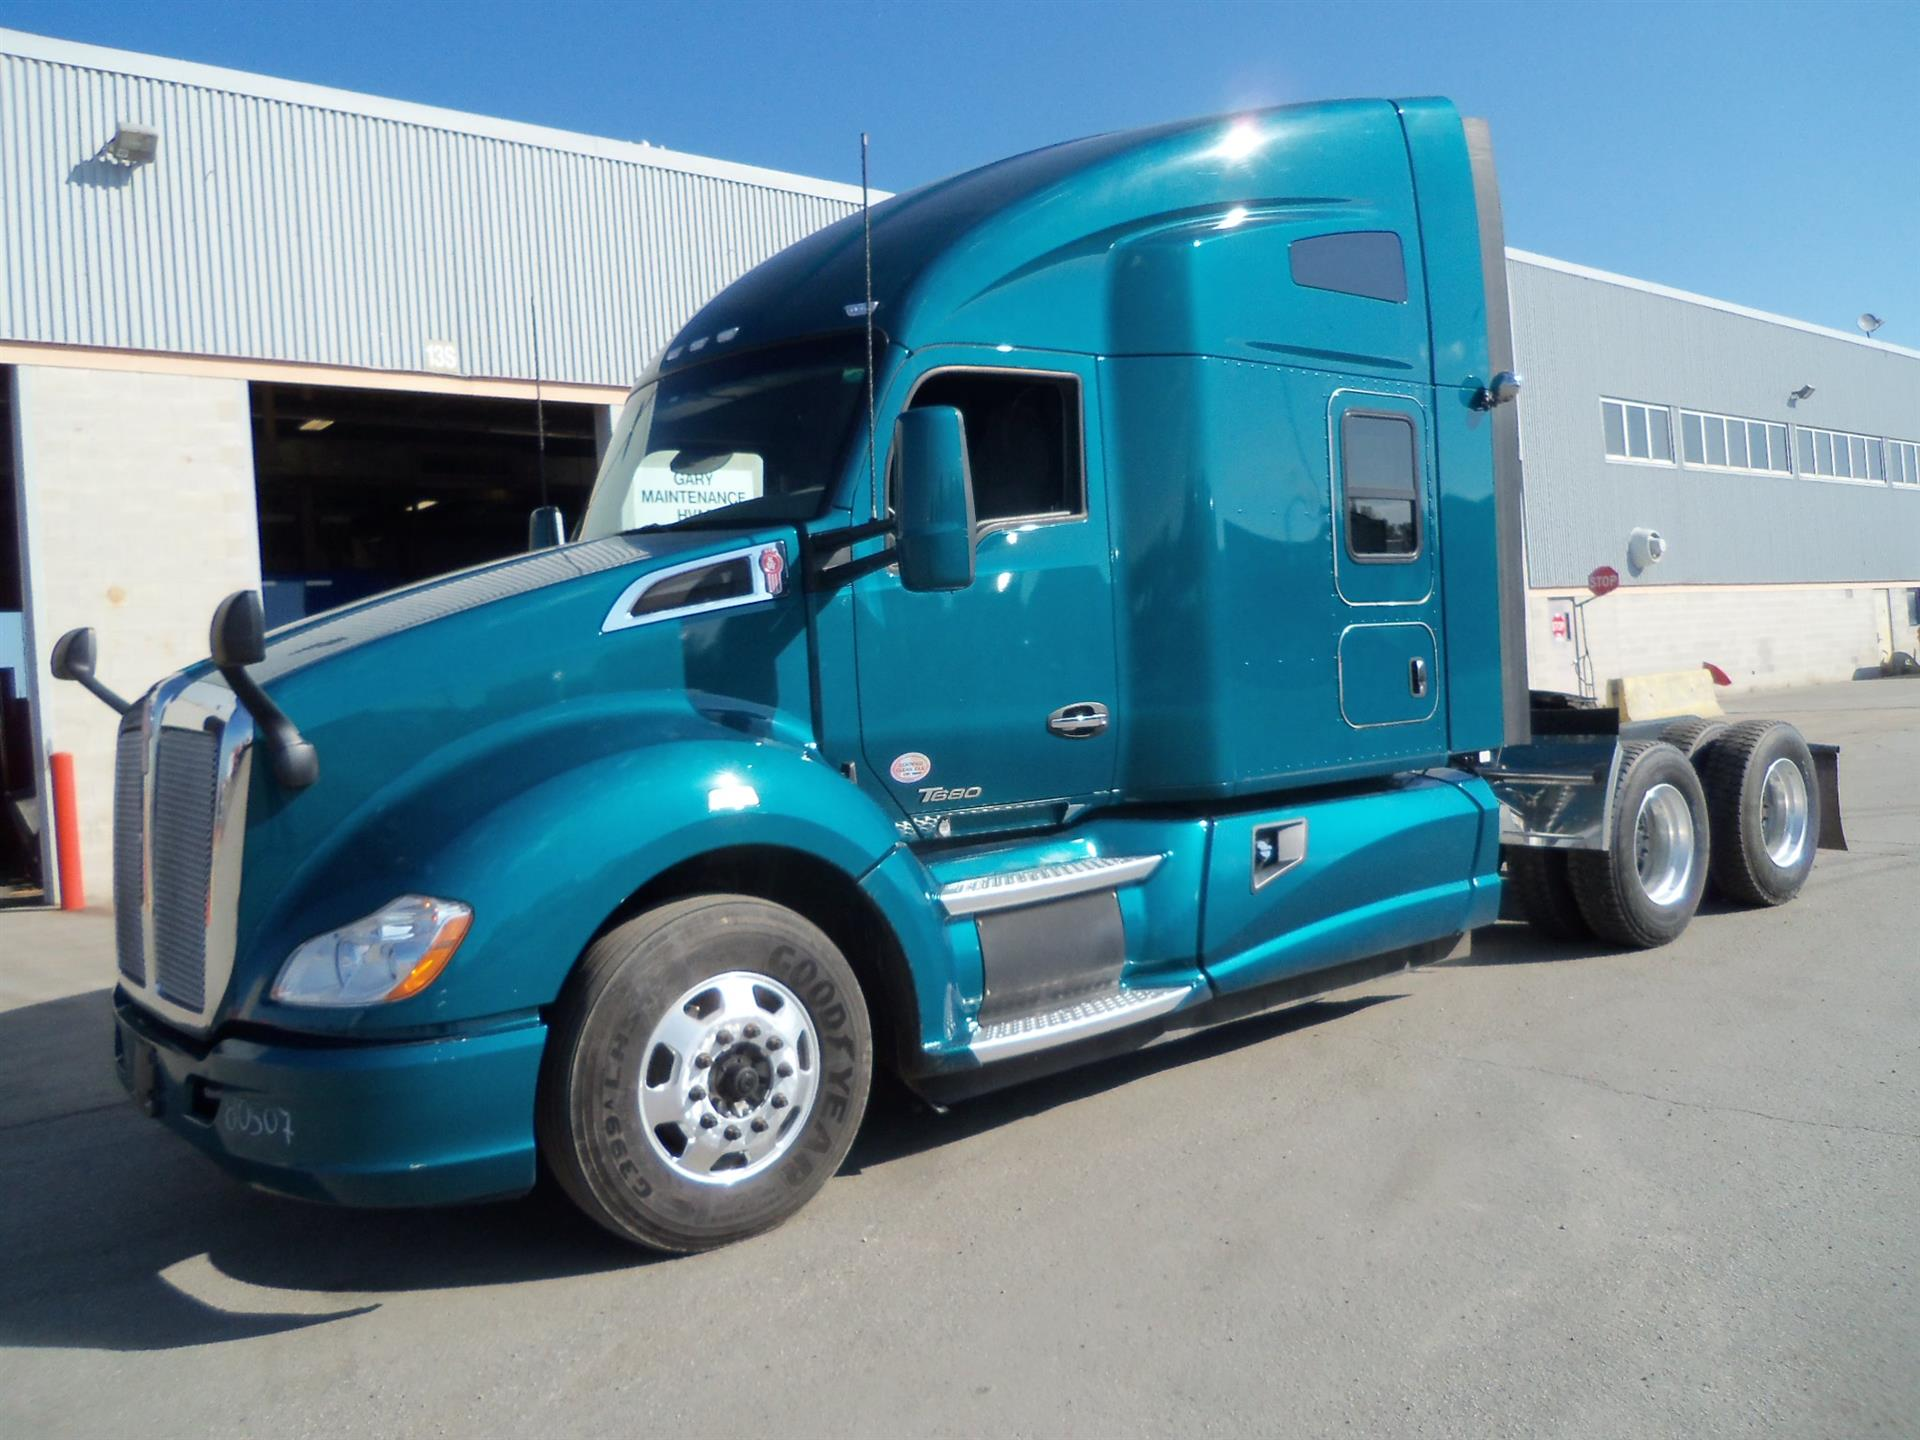 USED 2016 KENWORTH T680 SLEEPER TRUCK #133946